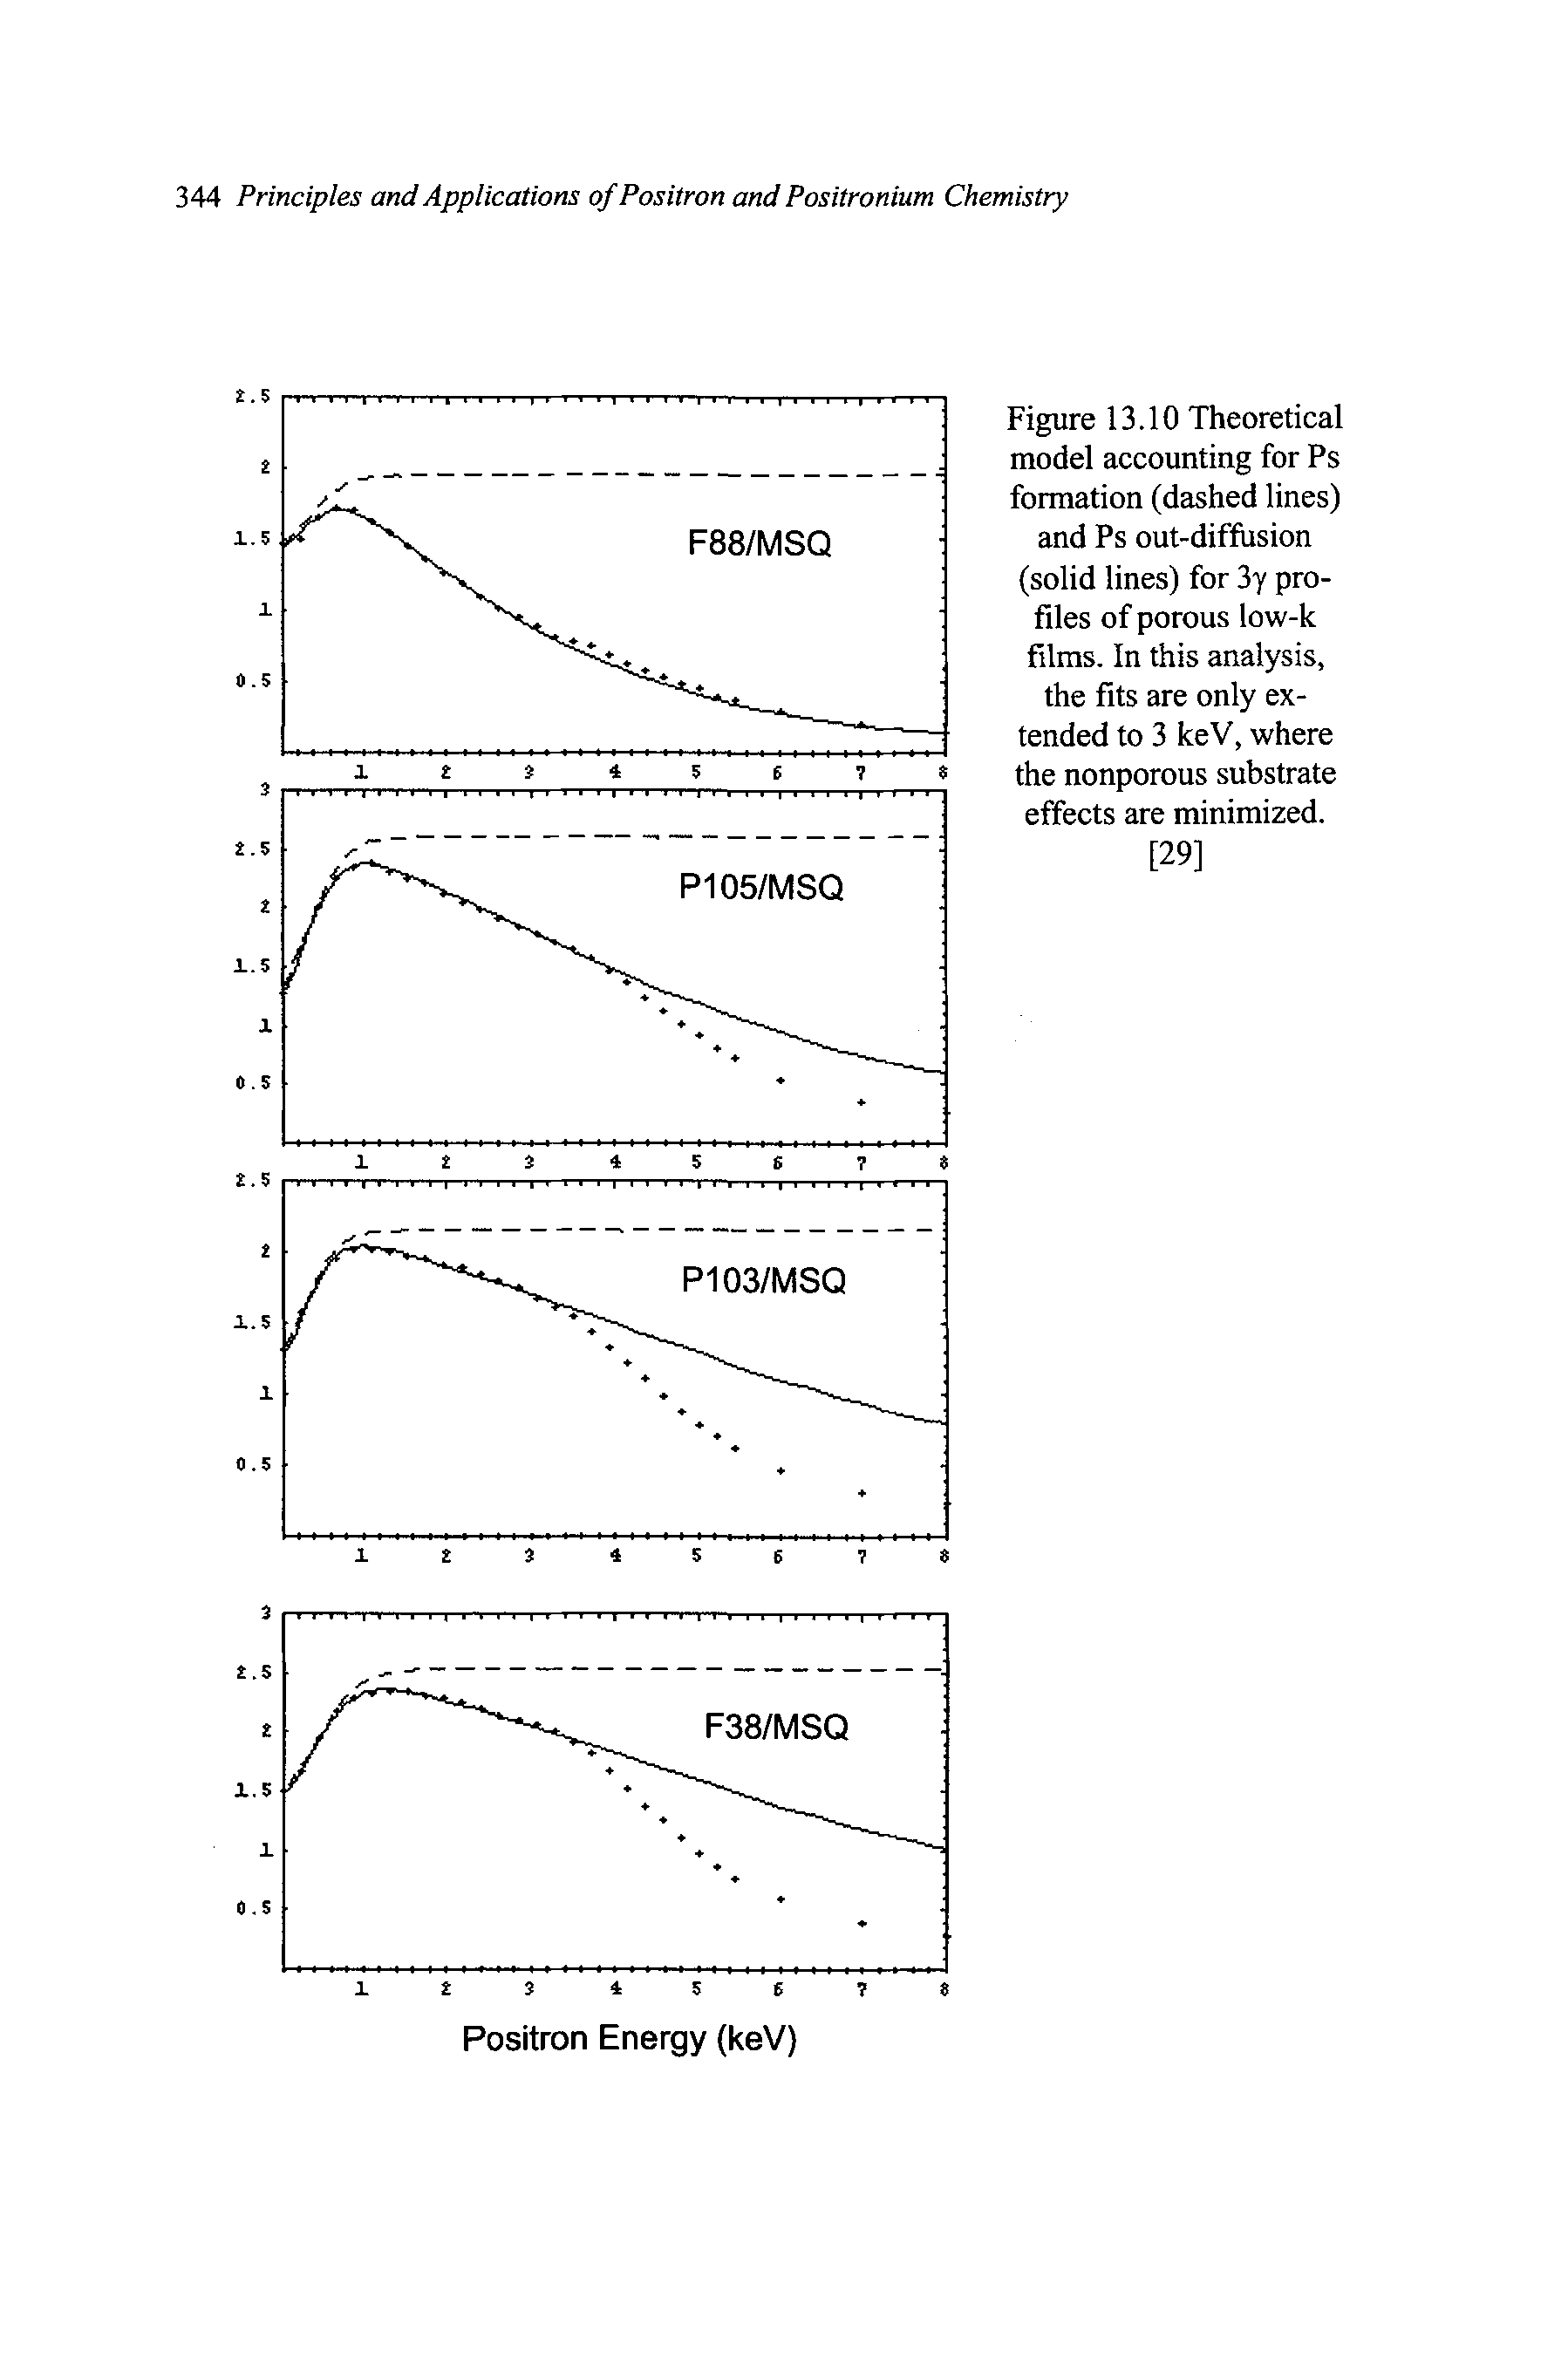 "Figure 13.10 <a href=""/info/theoretical_model"">Theoretical model</a> accounting for Ps formation (<a href=""/info/dashed_lines"">dashed lines</a>) and Ps out-diffusion (solid lines) for 3y profiles of porous low-k films. In this analysis, the fits are only extended to 3 keV, where the nonporous <a href=""/info/effect_of_substrates"">substrate effects</a> are minimized."